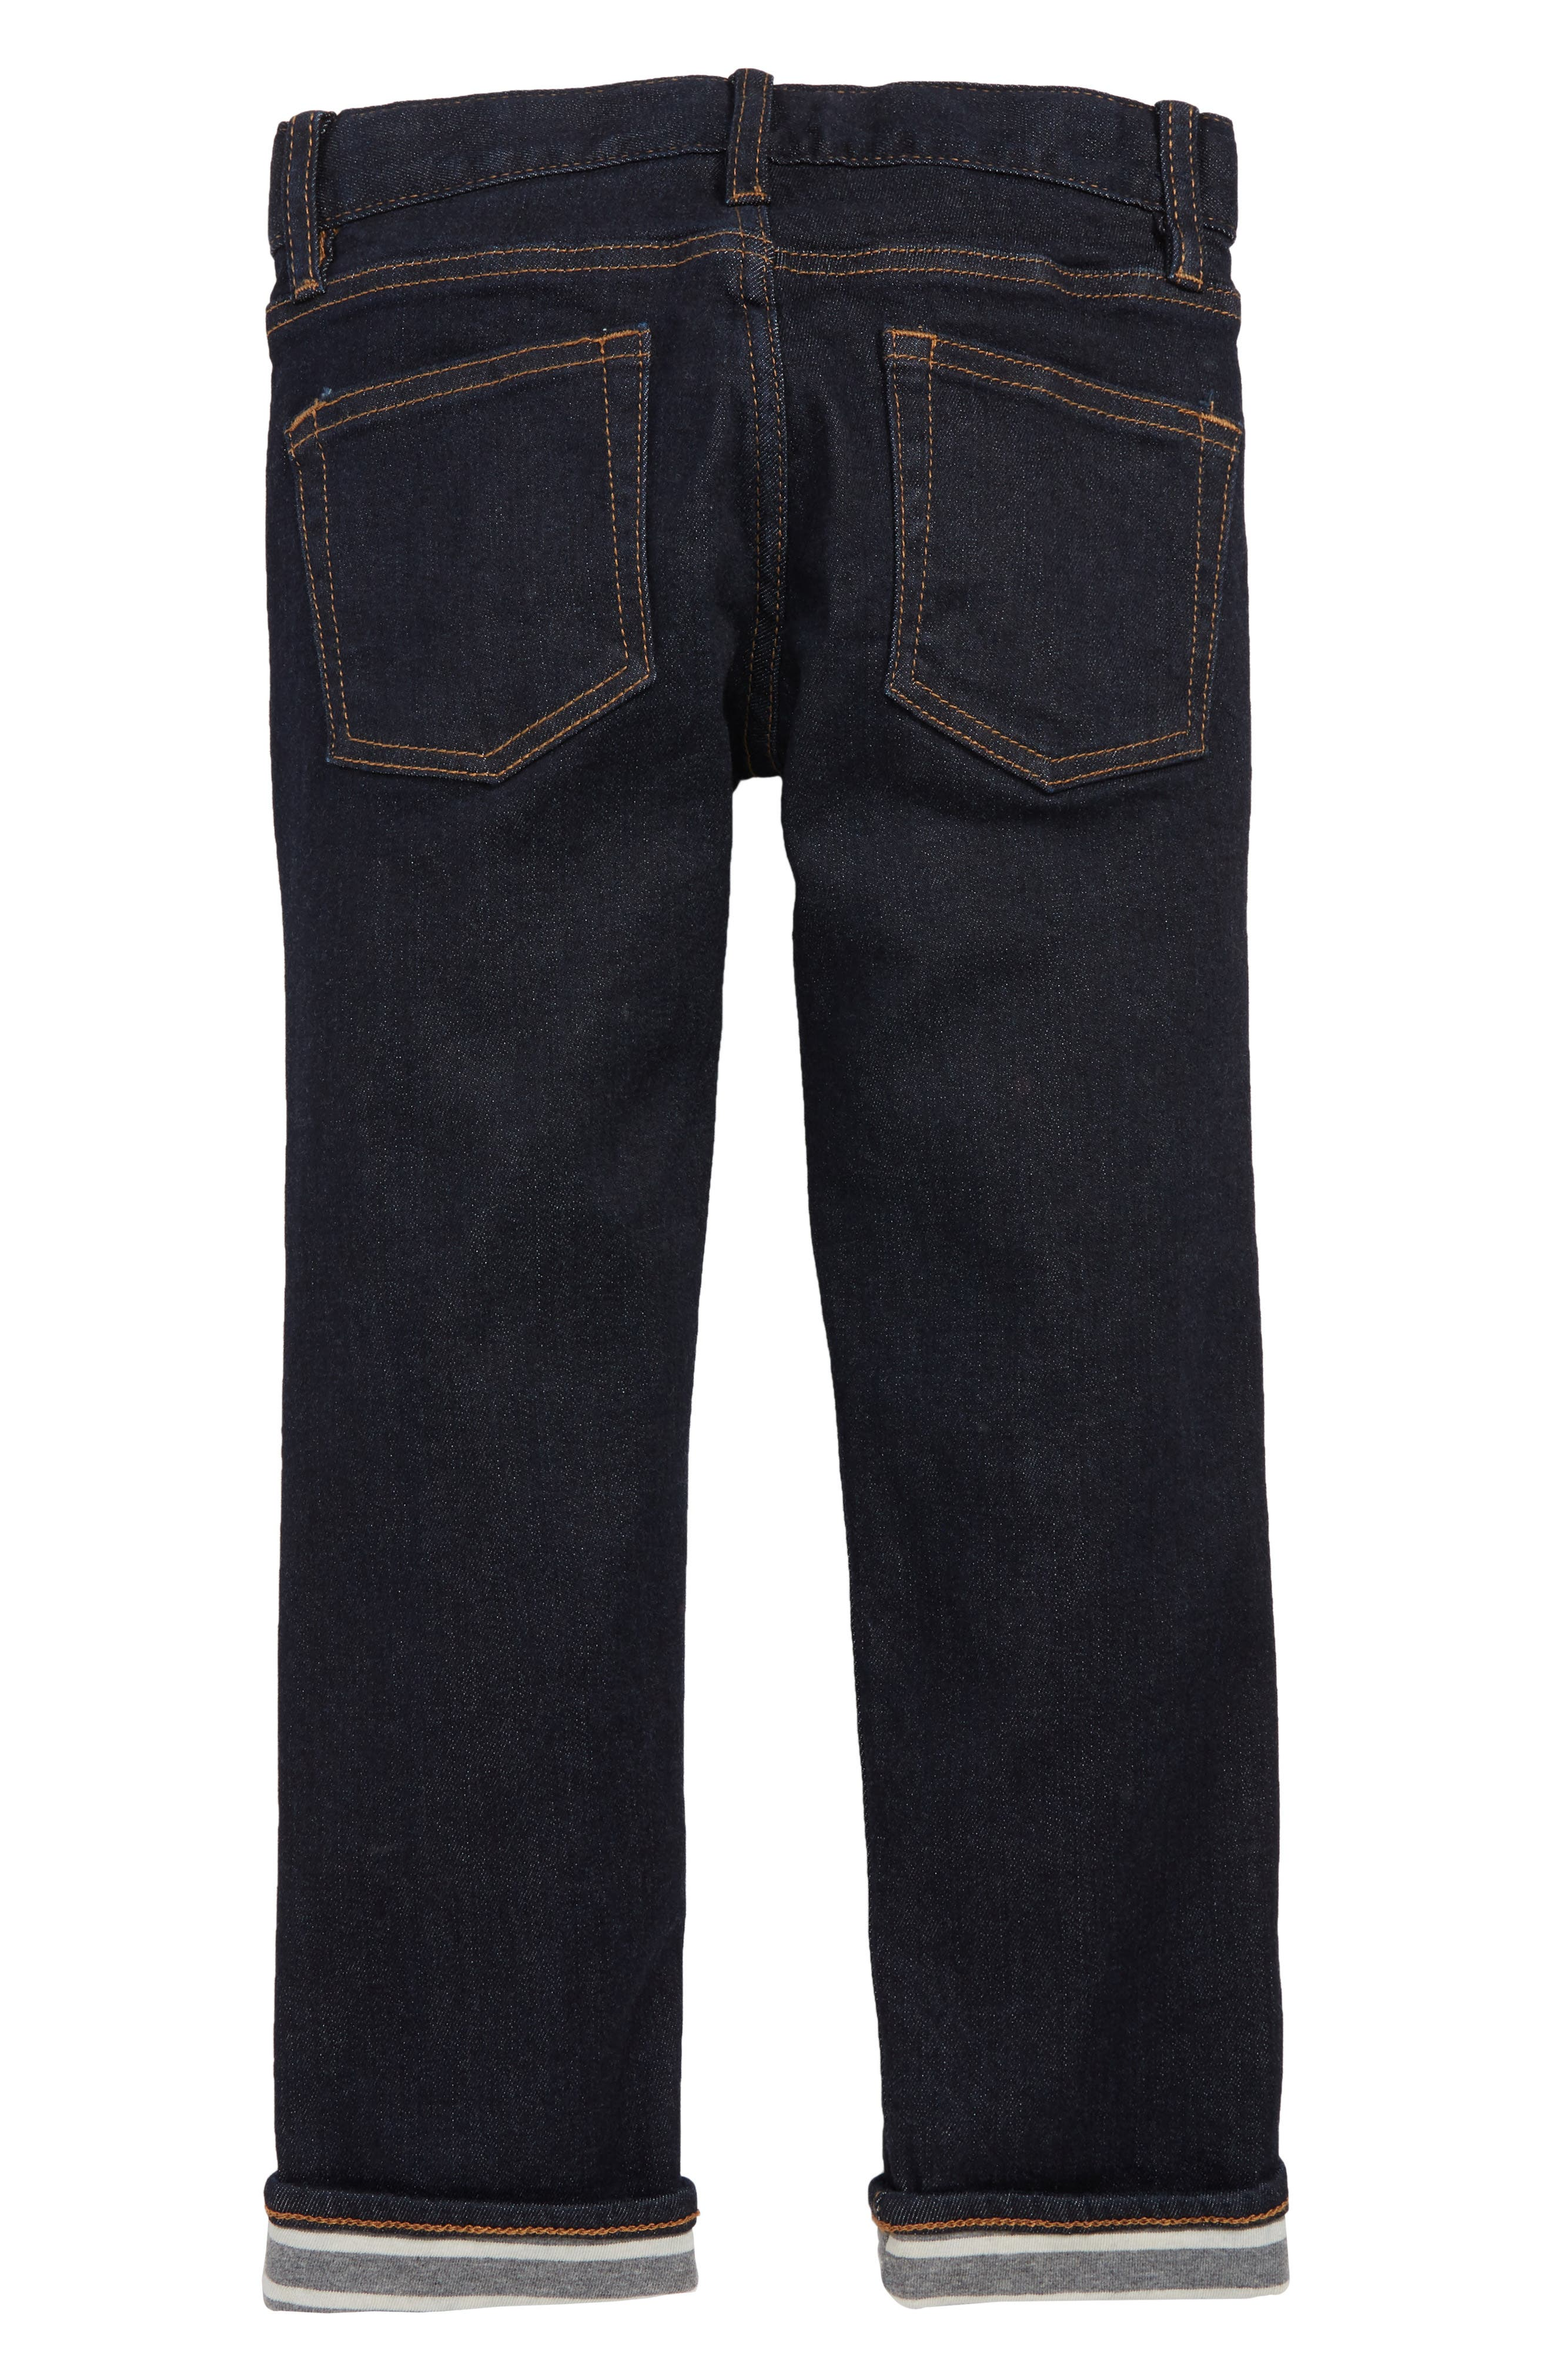 Runaround Slim Fit Lined Jeans,                             Alternate thumbnail 2, color,                             SKINNY RINSE